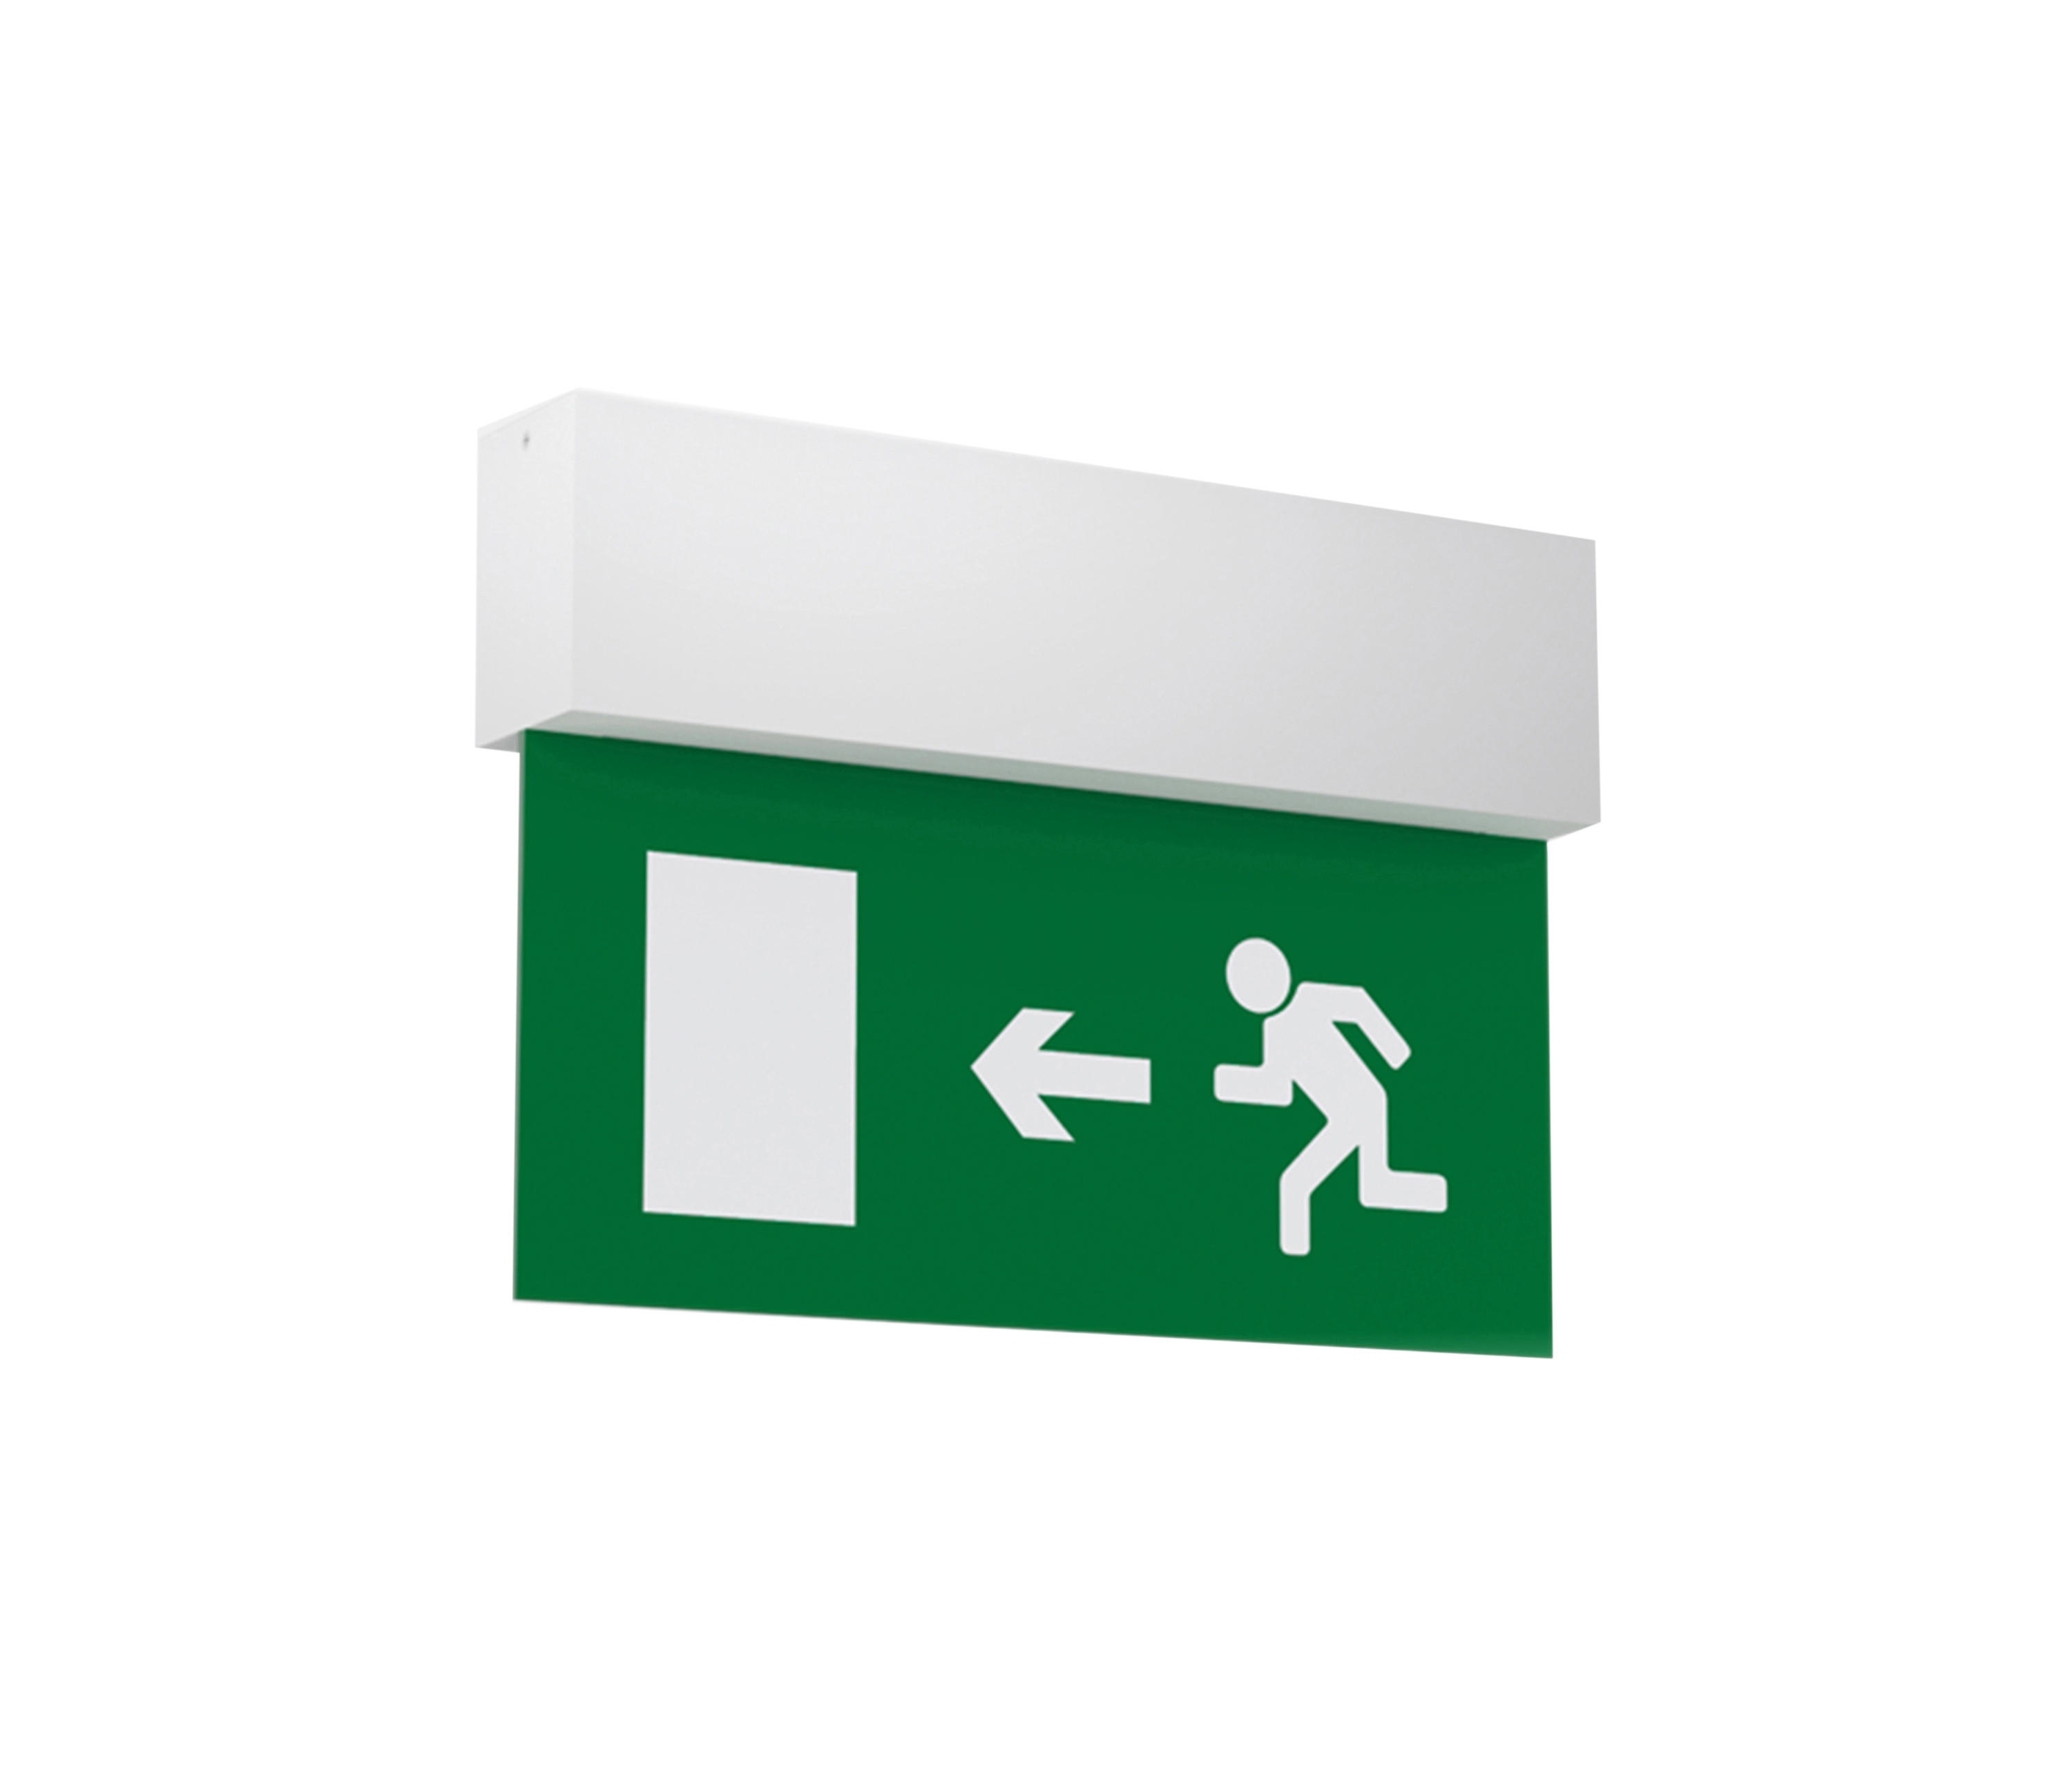 LS WALL-MOUNTED - Wall-mounted emergency lights from O/M Architonic